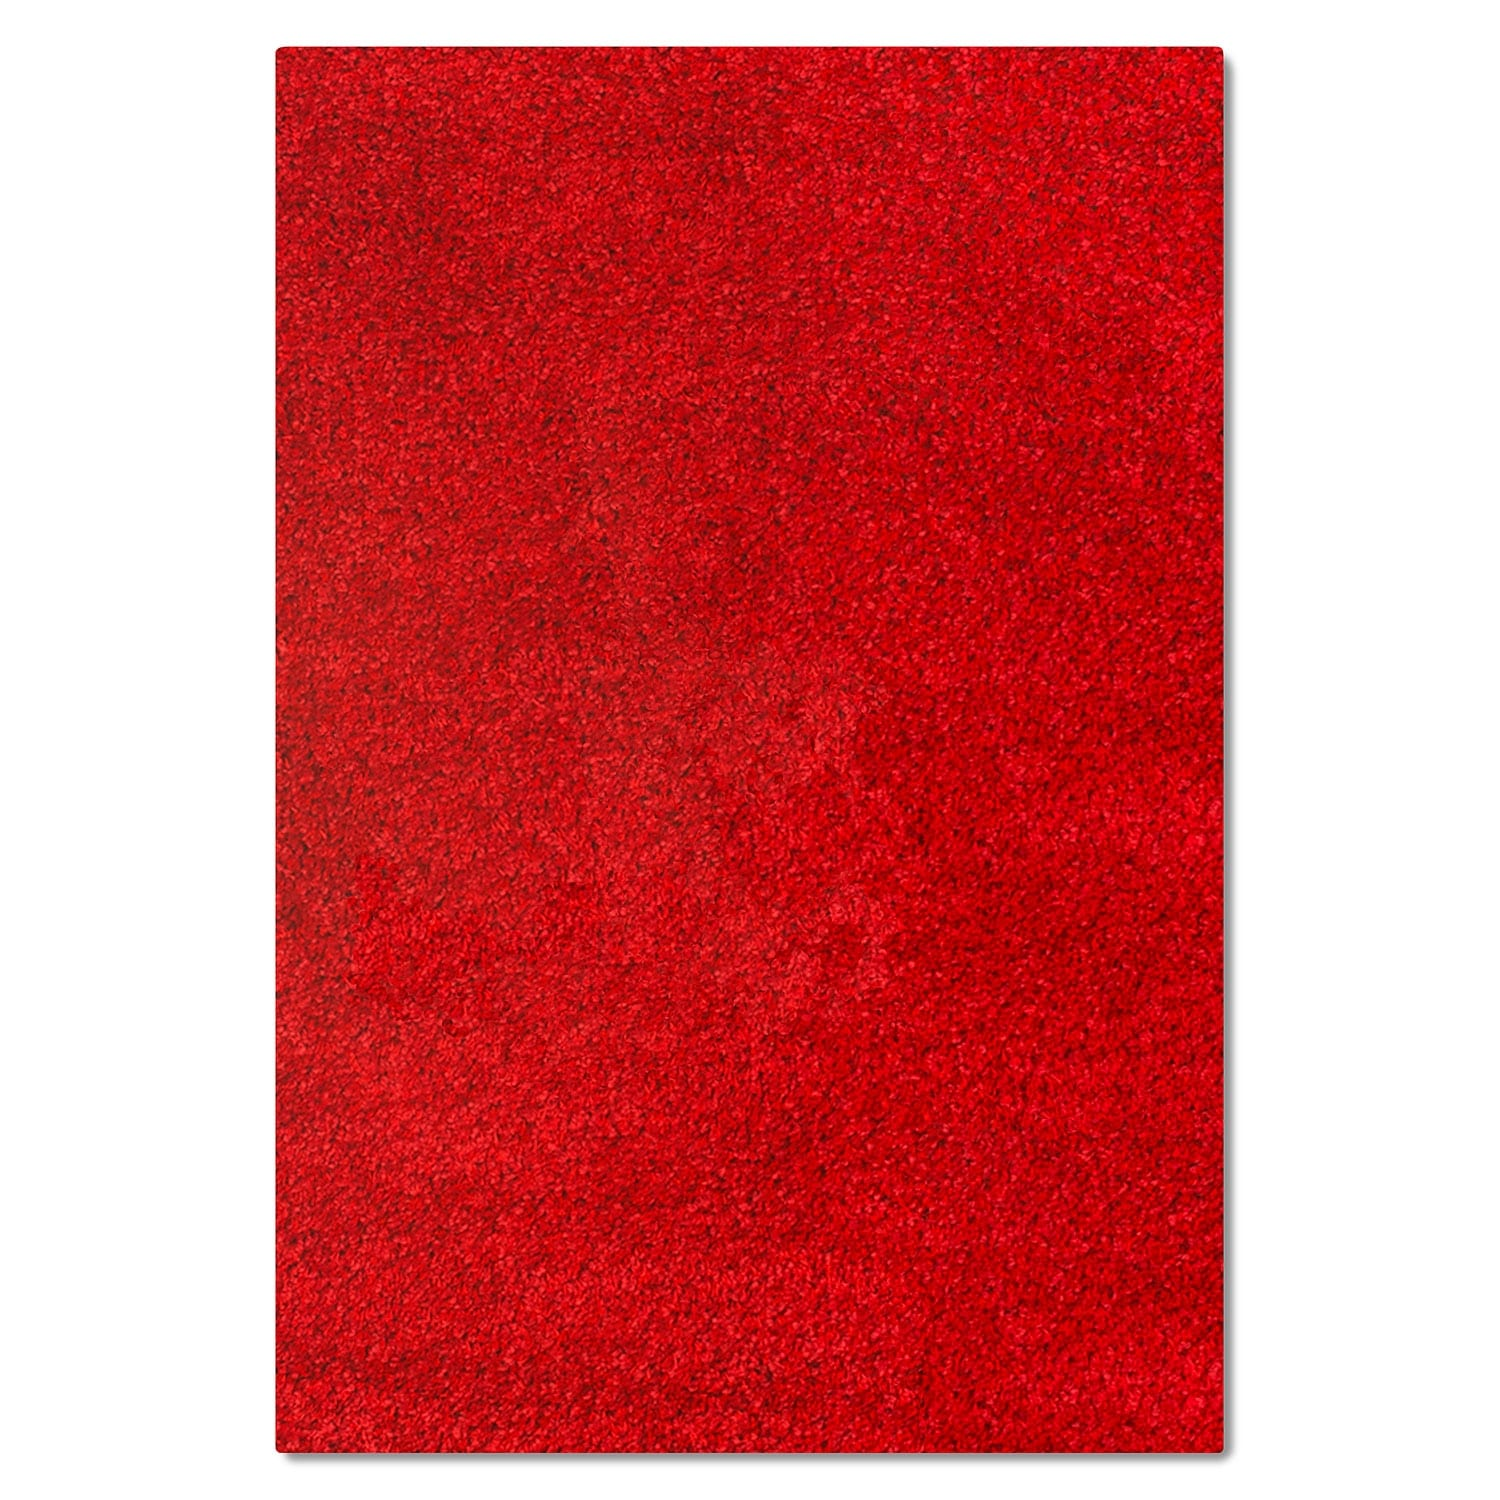 Rugs - Comfort Red Shag Area Rug (5' x 8')